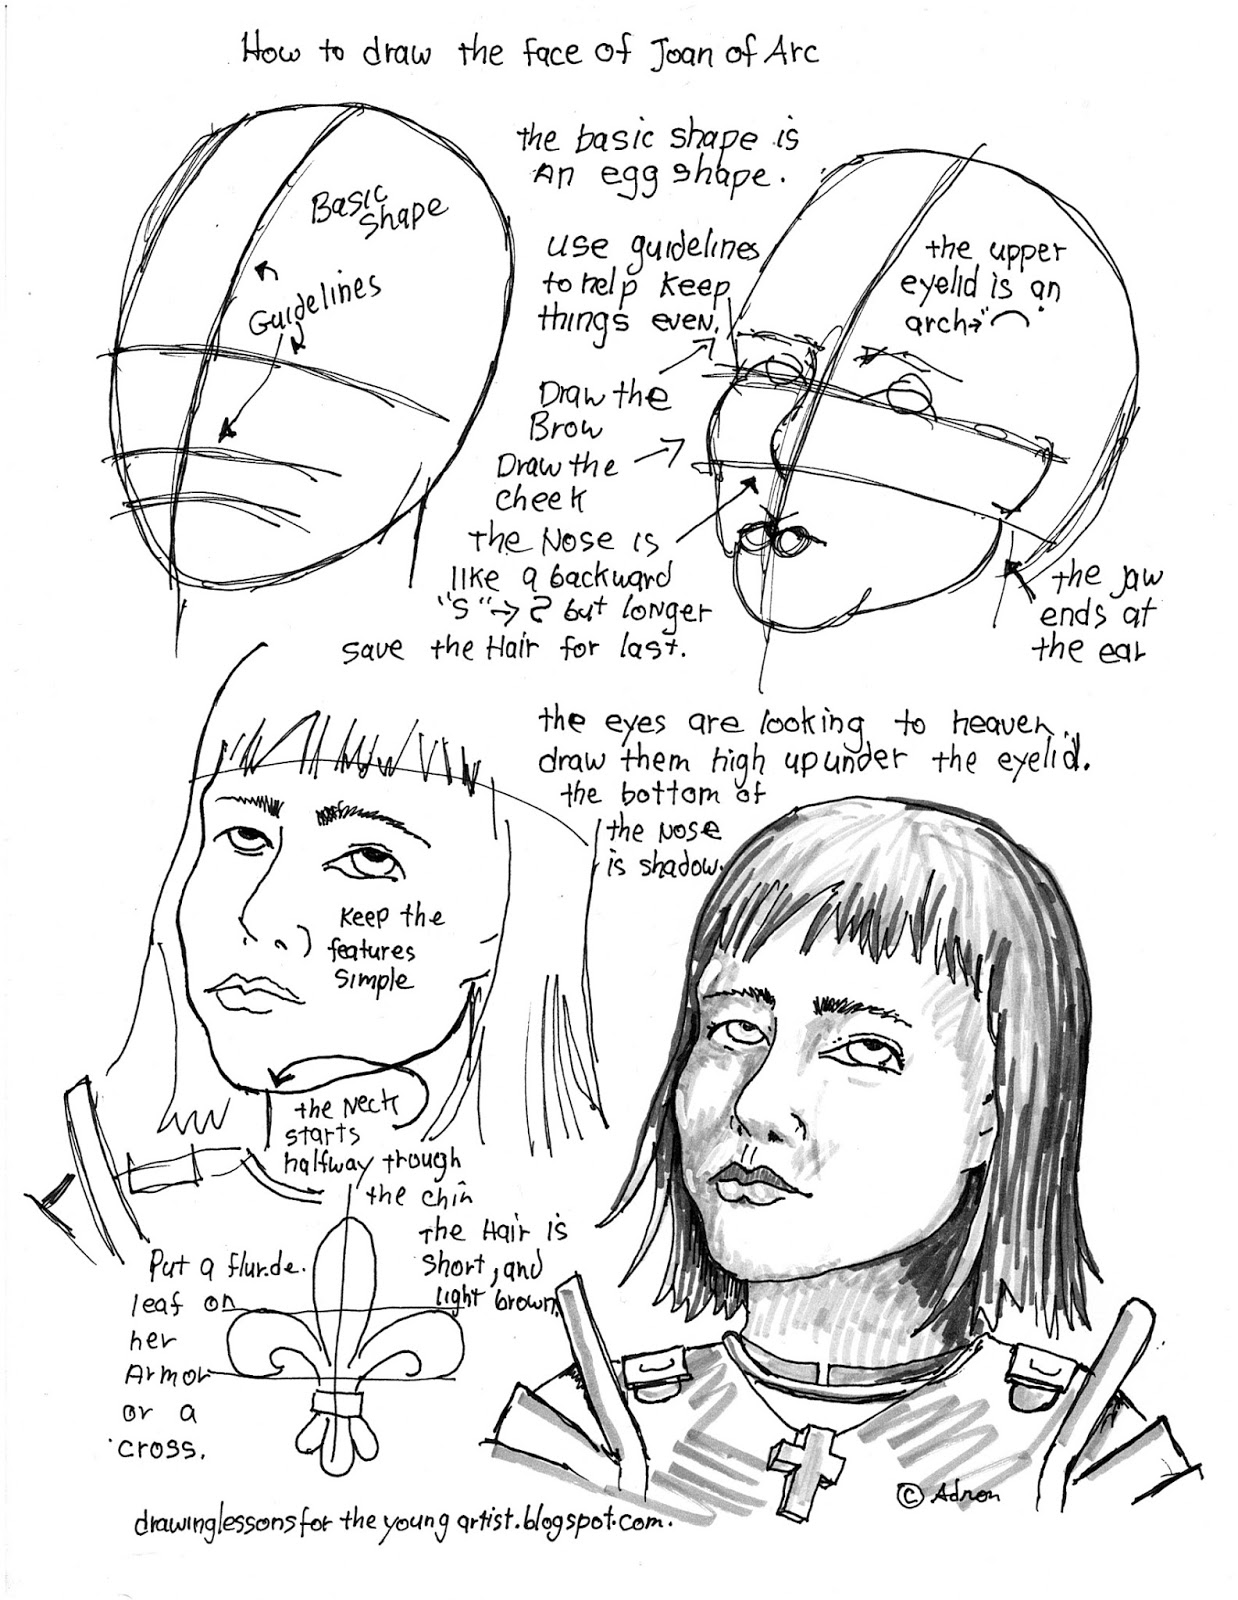 How To Draw Worksheets For The Young Artist How To Draw The Face Of